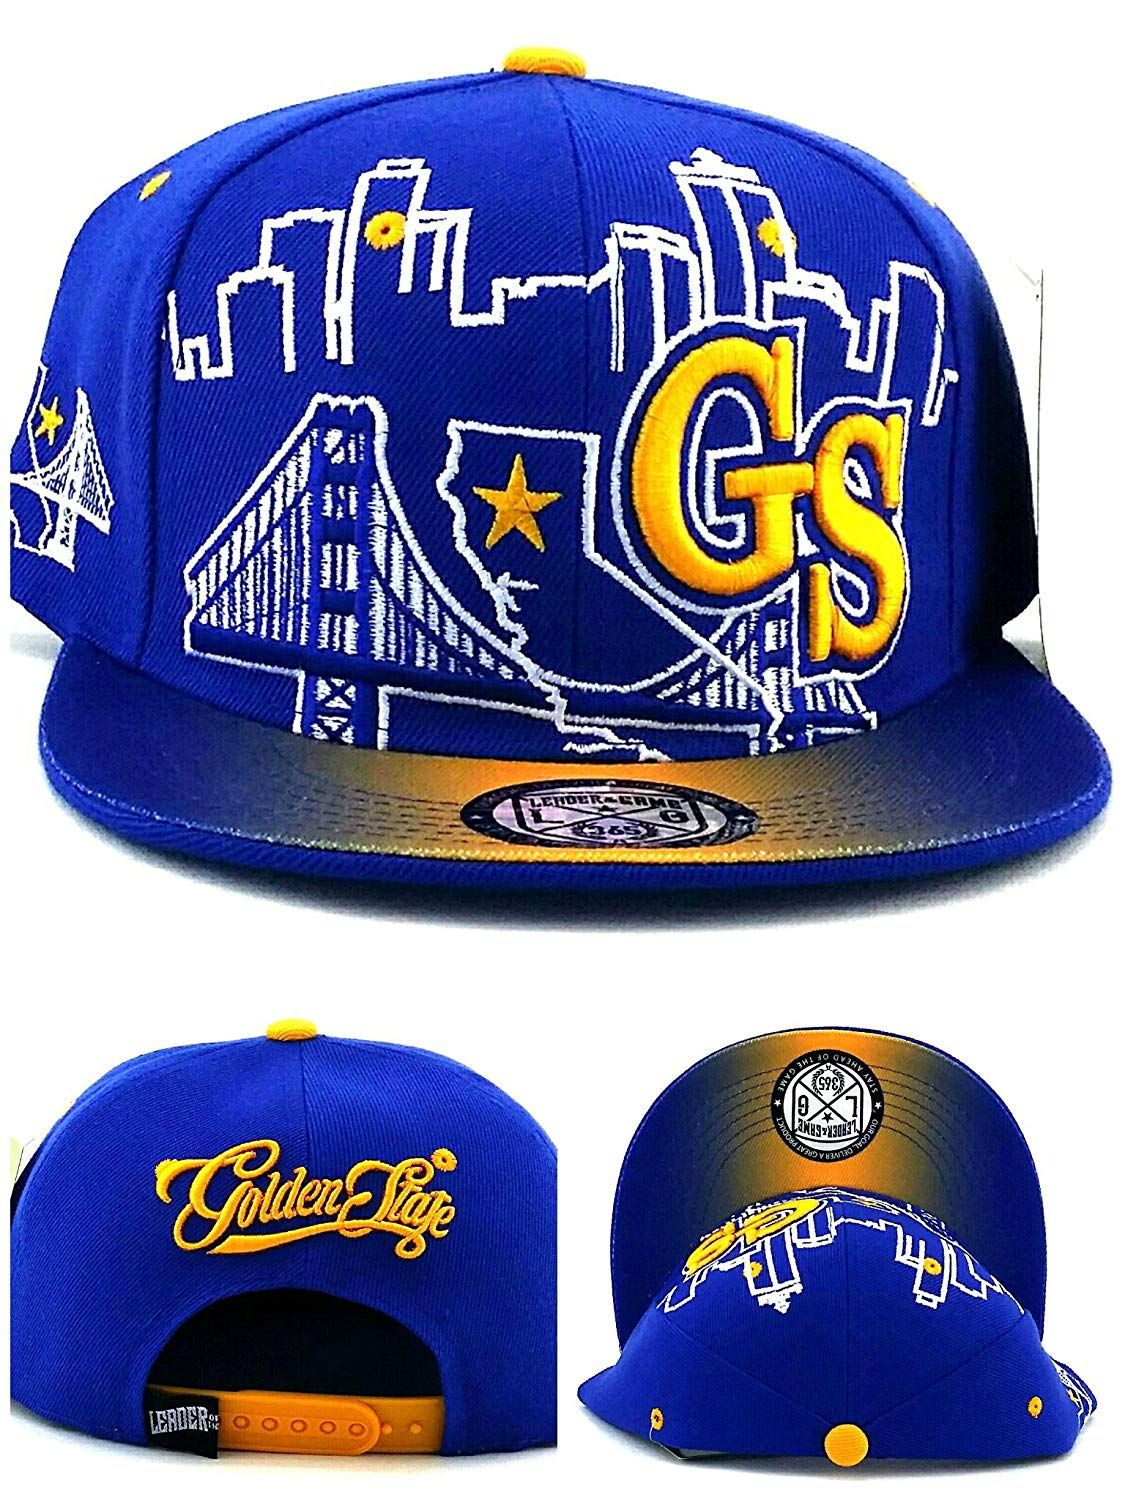 Leader of the Game Golden State New GS Skyline 3 Bridge Warriors Colors Blue  Gold Era Snapback Hat 6fda3f5f2367